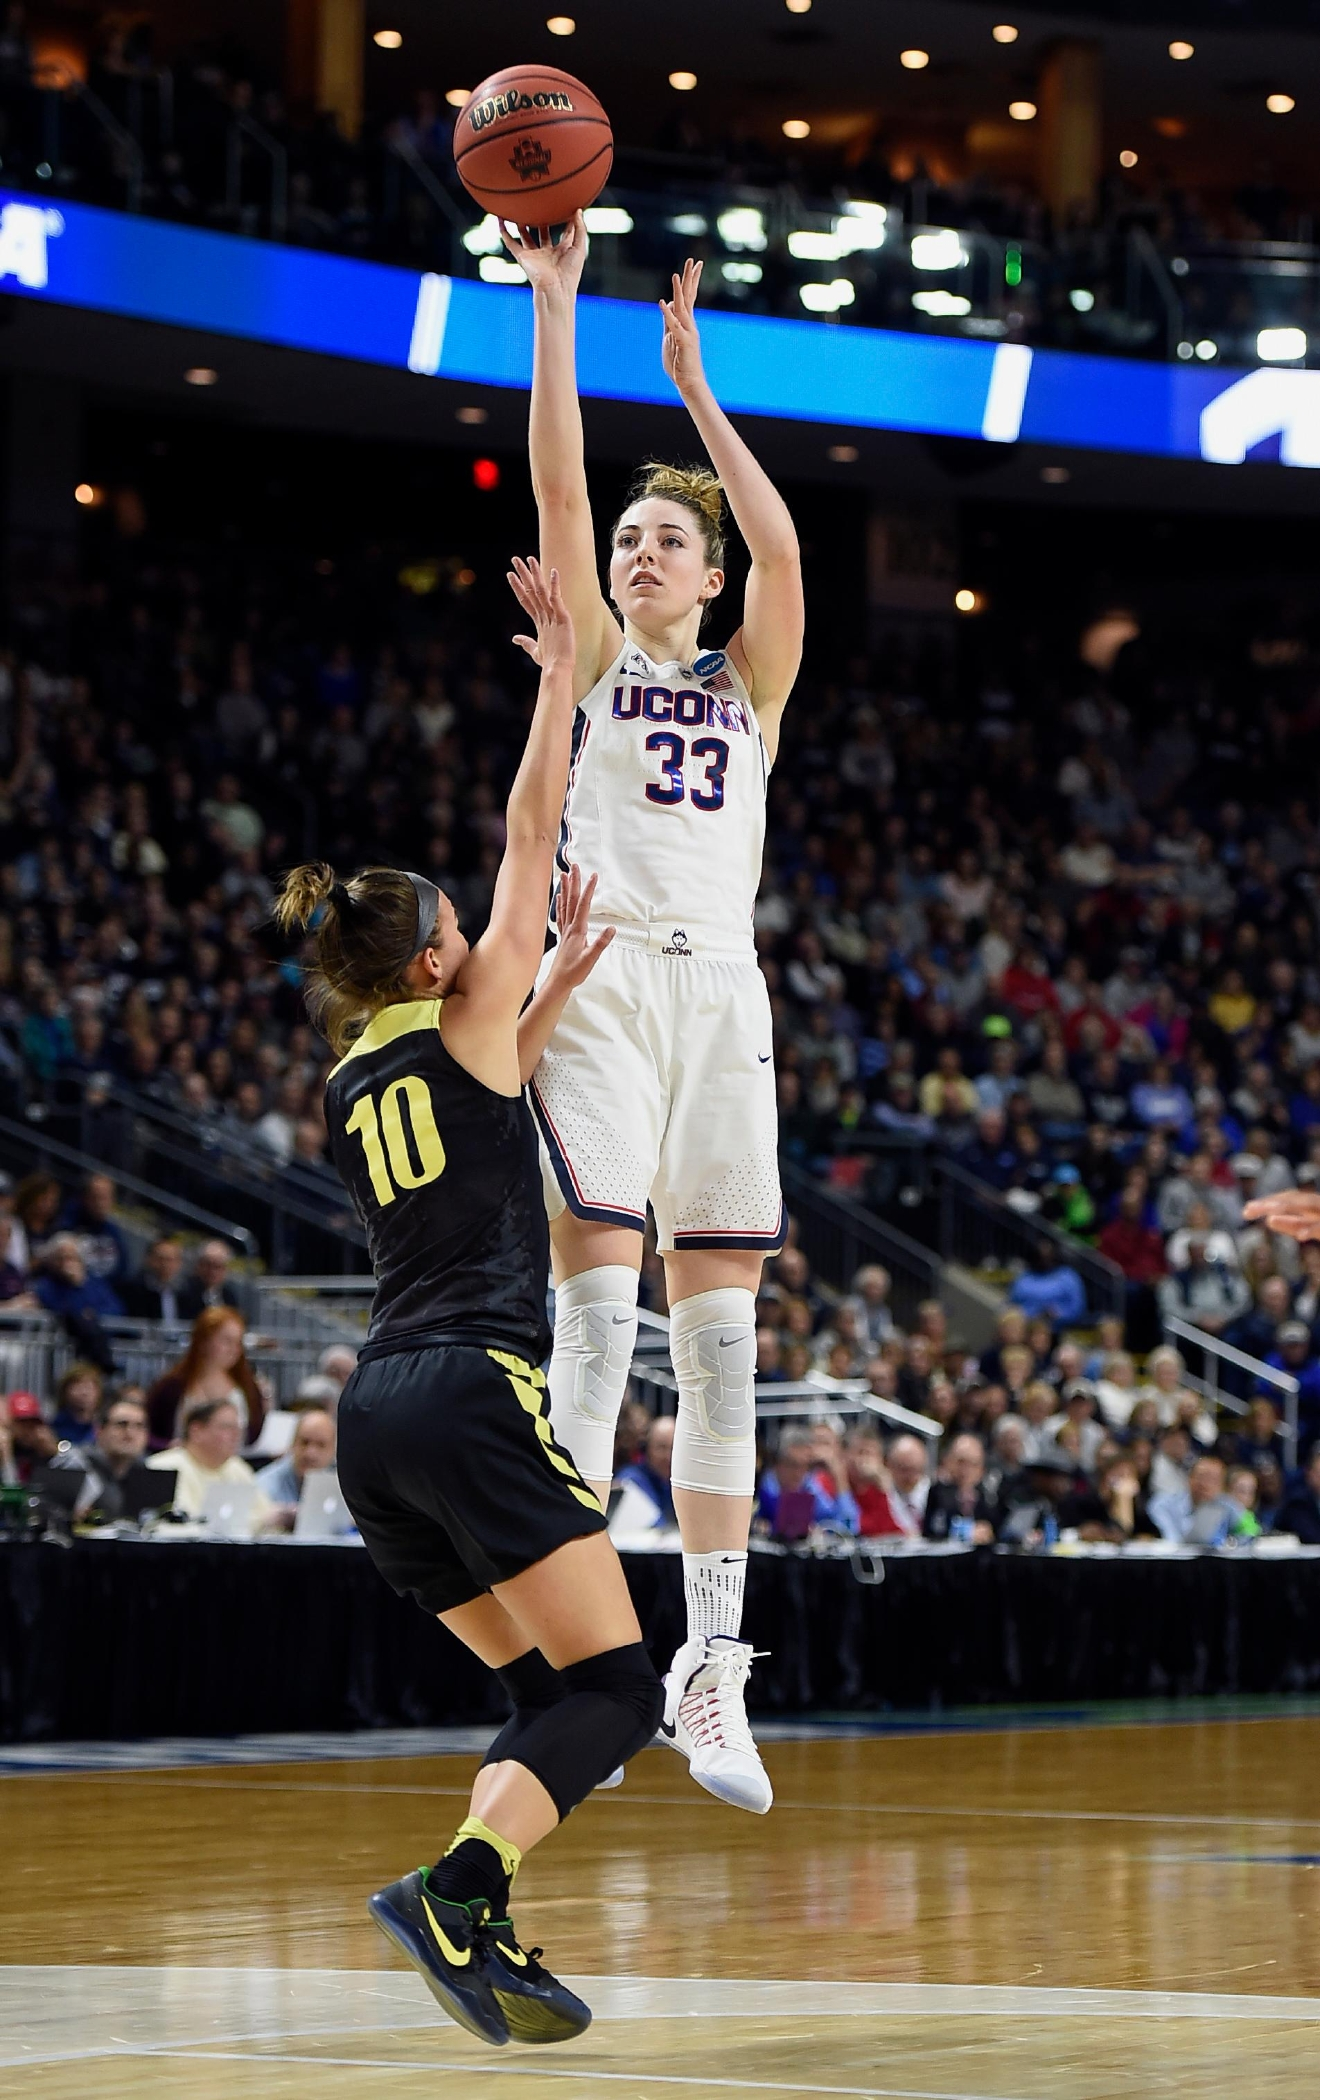 Connecticut's Katie Lou Samuelson shoots over Oregon's Lexi Bando, left, during the first half of a regional final game in the NCAA women's college basketball tournament, Monday, March 27, 2017, in Bridgeport, Conn. (AP Photo/Jessica Hill)